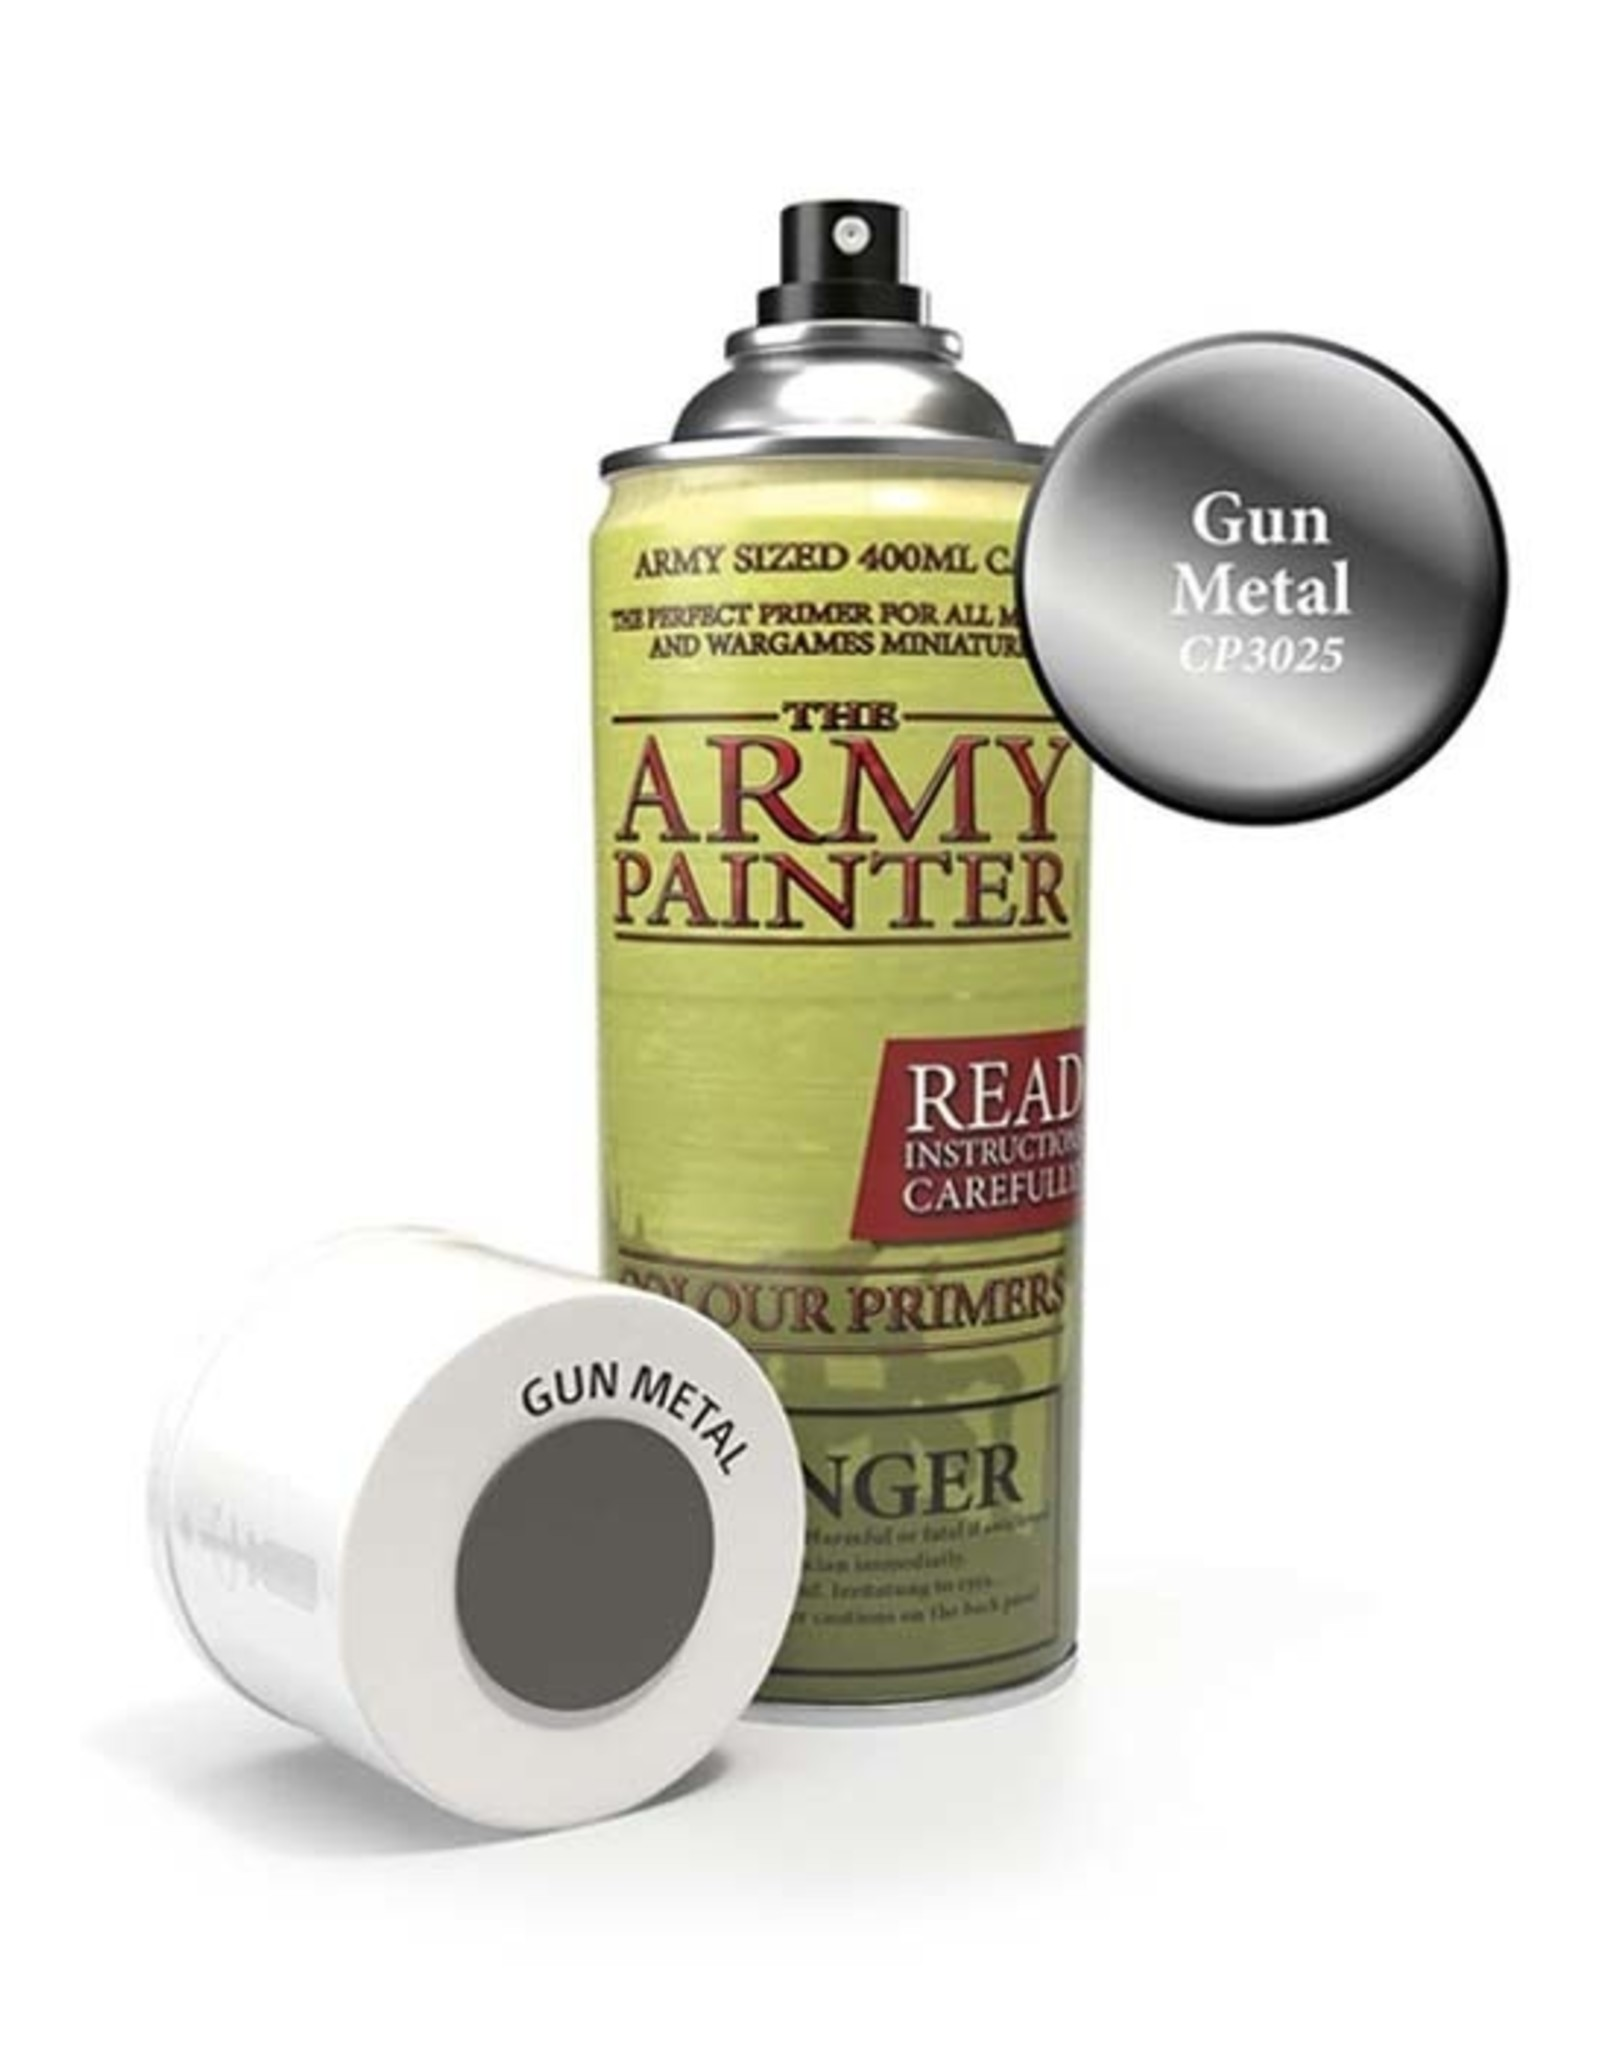 The Army Painter Army Painter: Colour Primer - Gun Metal